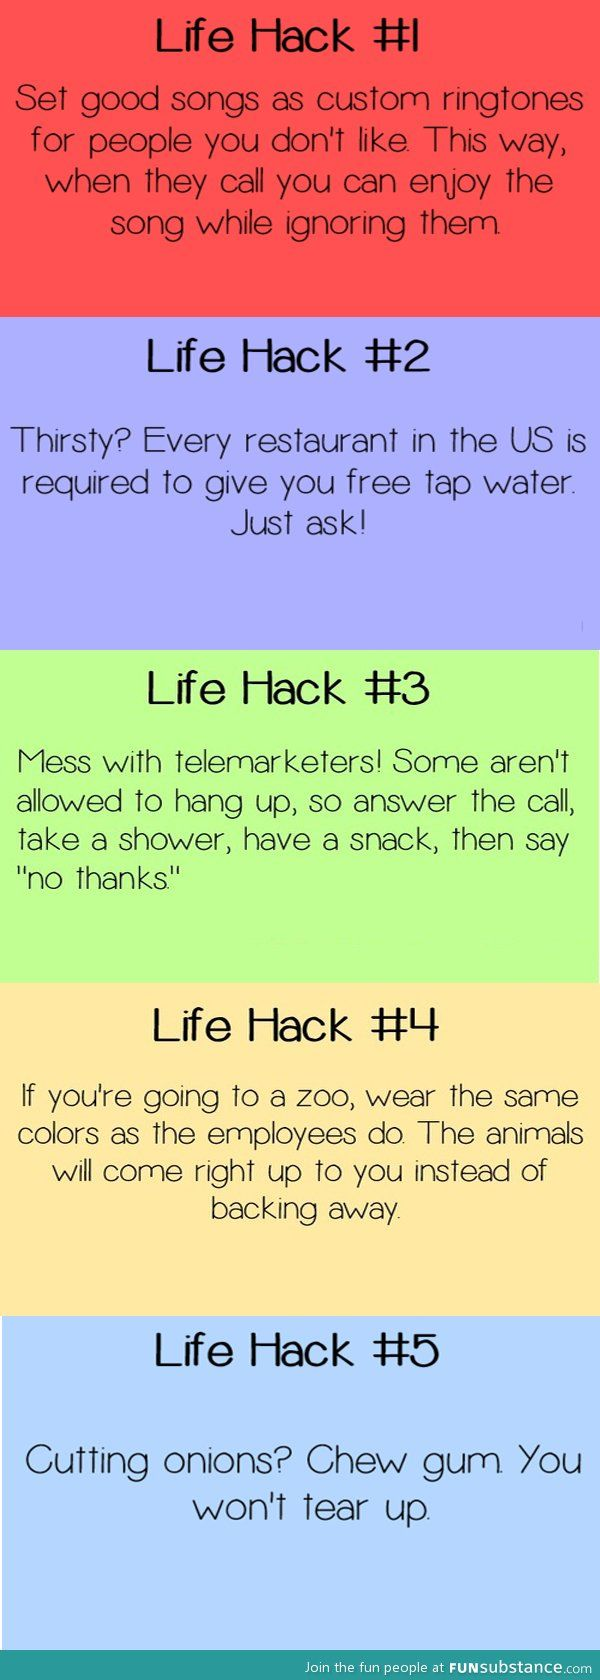 5 life hacks....the only one I care about here is the Zoo one. Who wants to get a zookeeper costume with me and have the best day of your life??